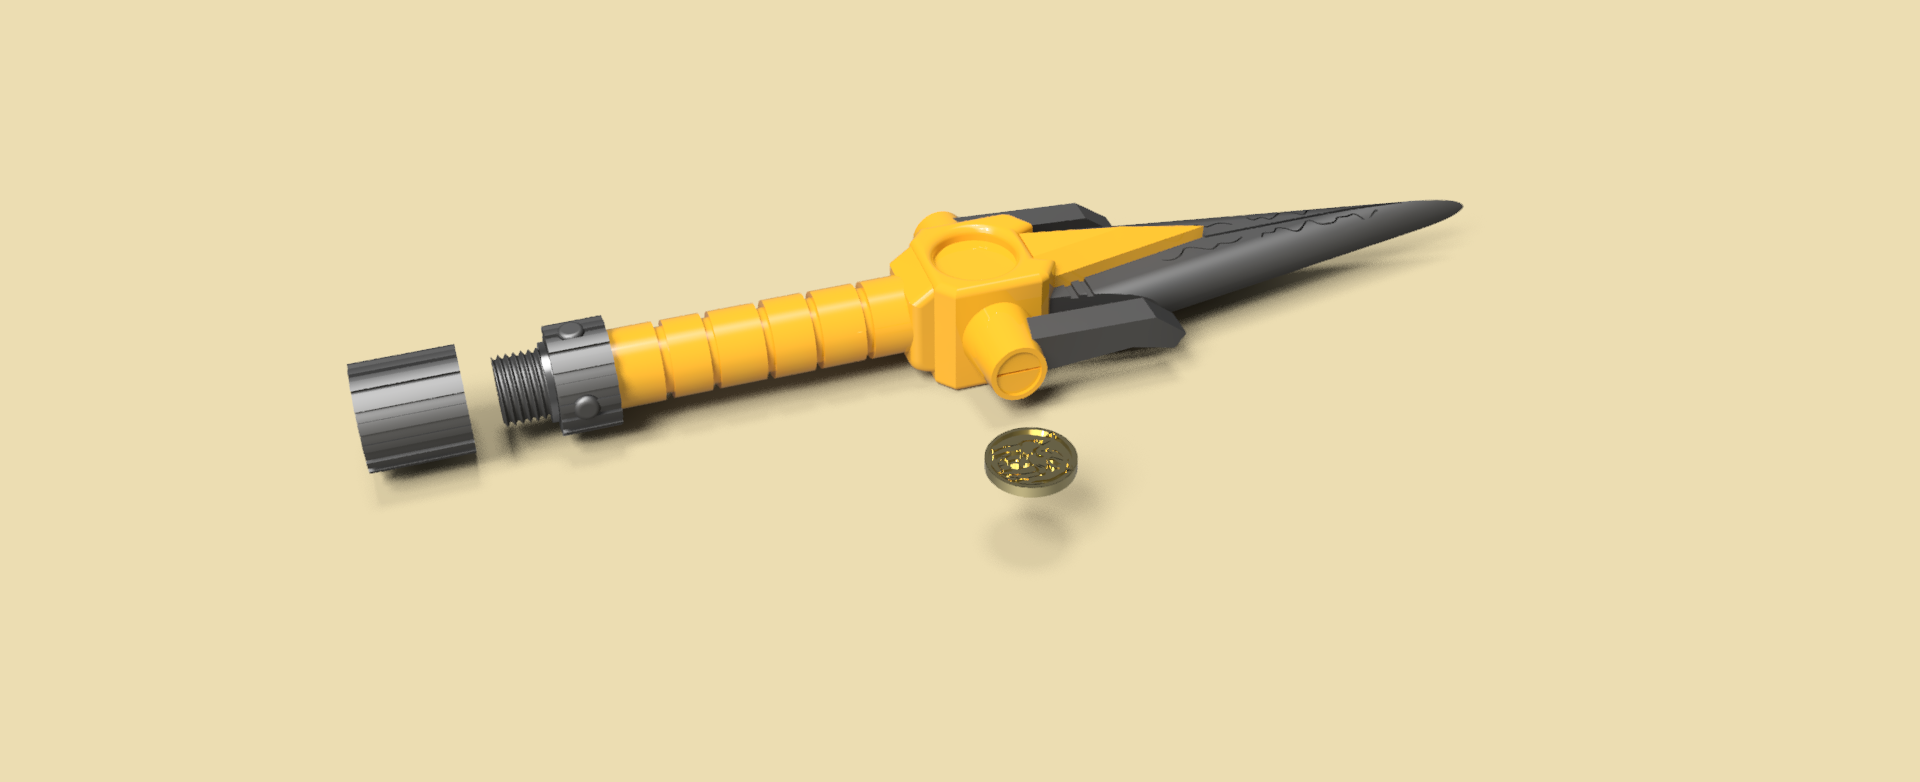 dagas ranger version 3 v36.png Download STL file Power Dagger Ranger Yellow Super Sentai • 3D printable template, Geralp